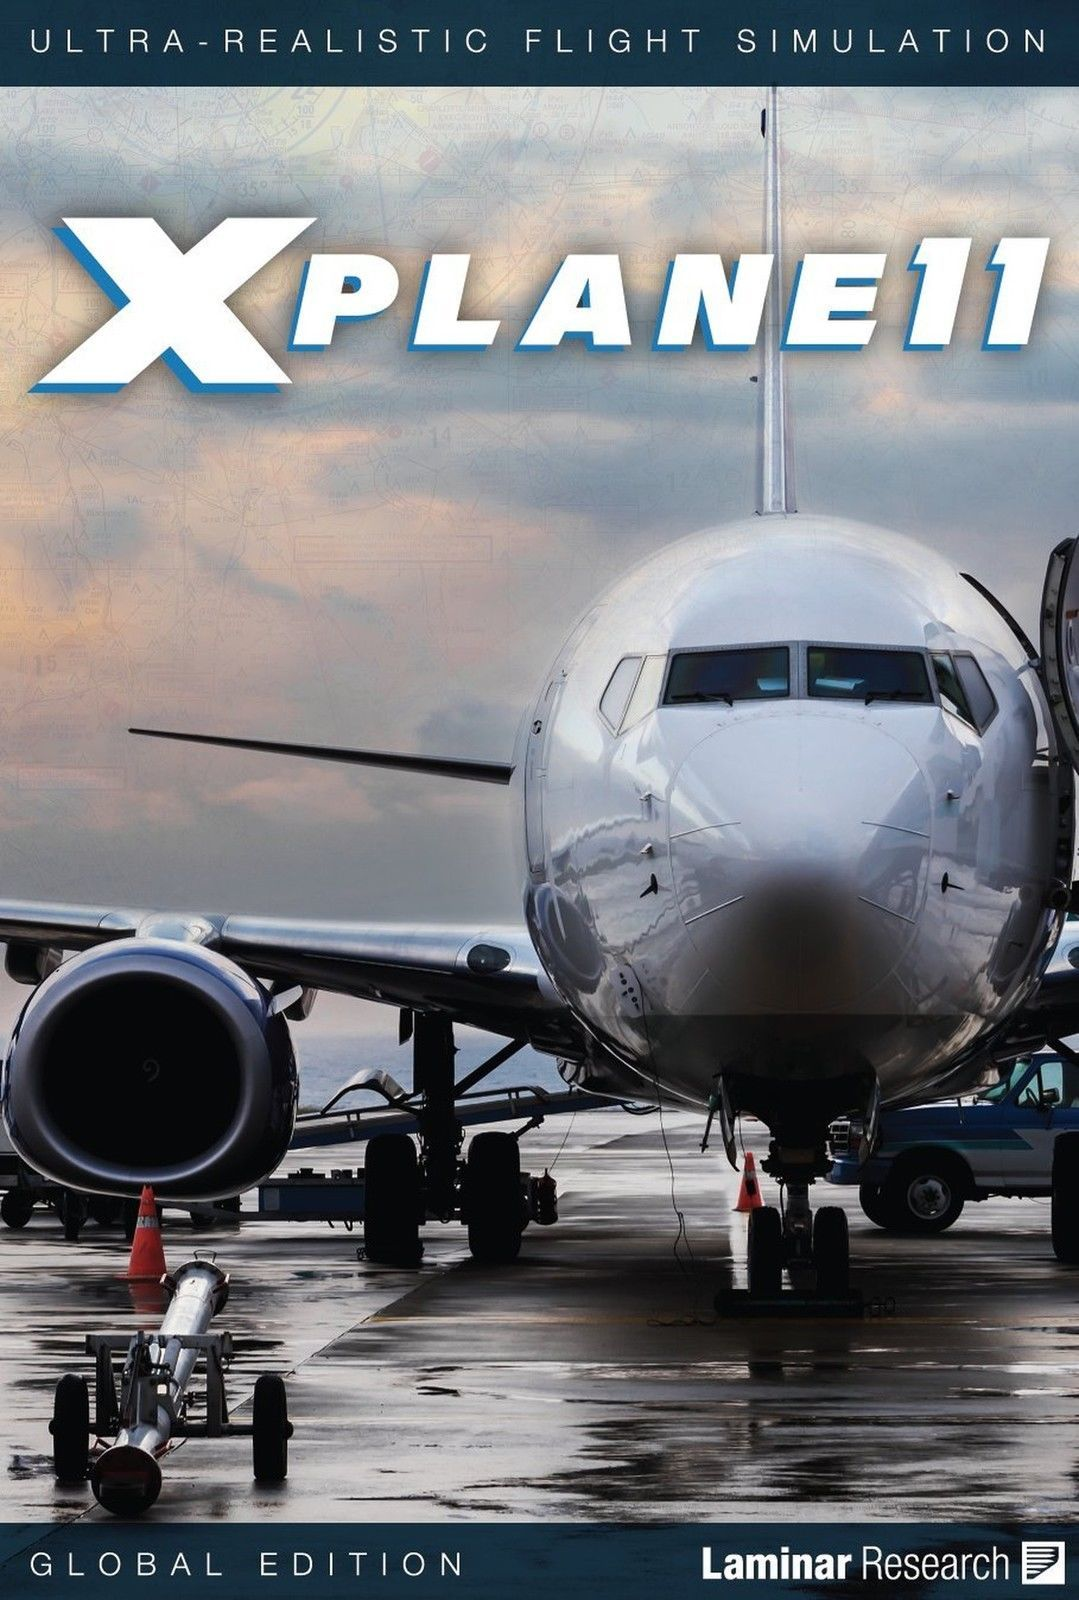 Details about X Plane 11 Global Edition PC MAC LINUX 8 DVD